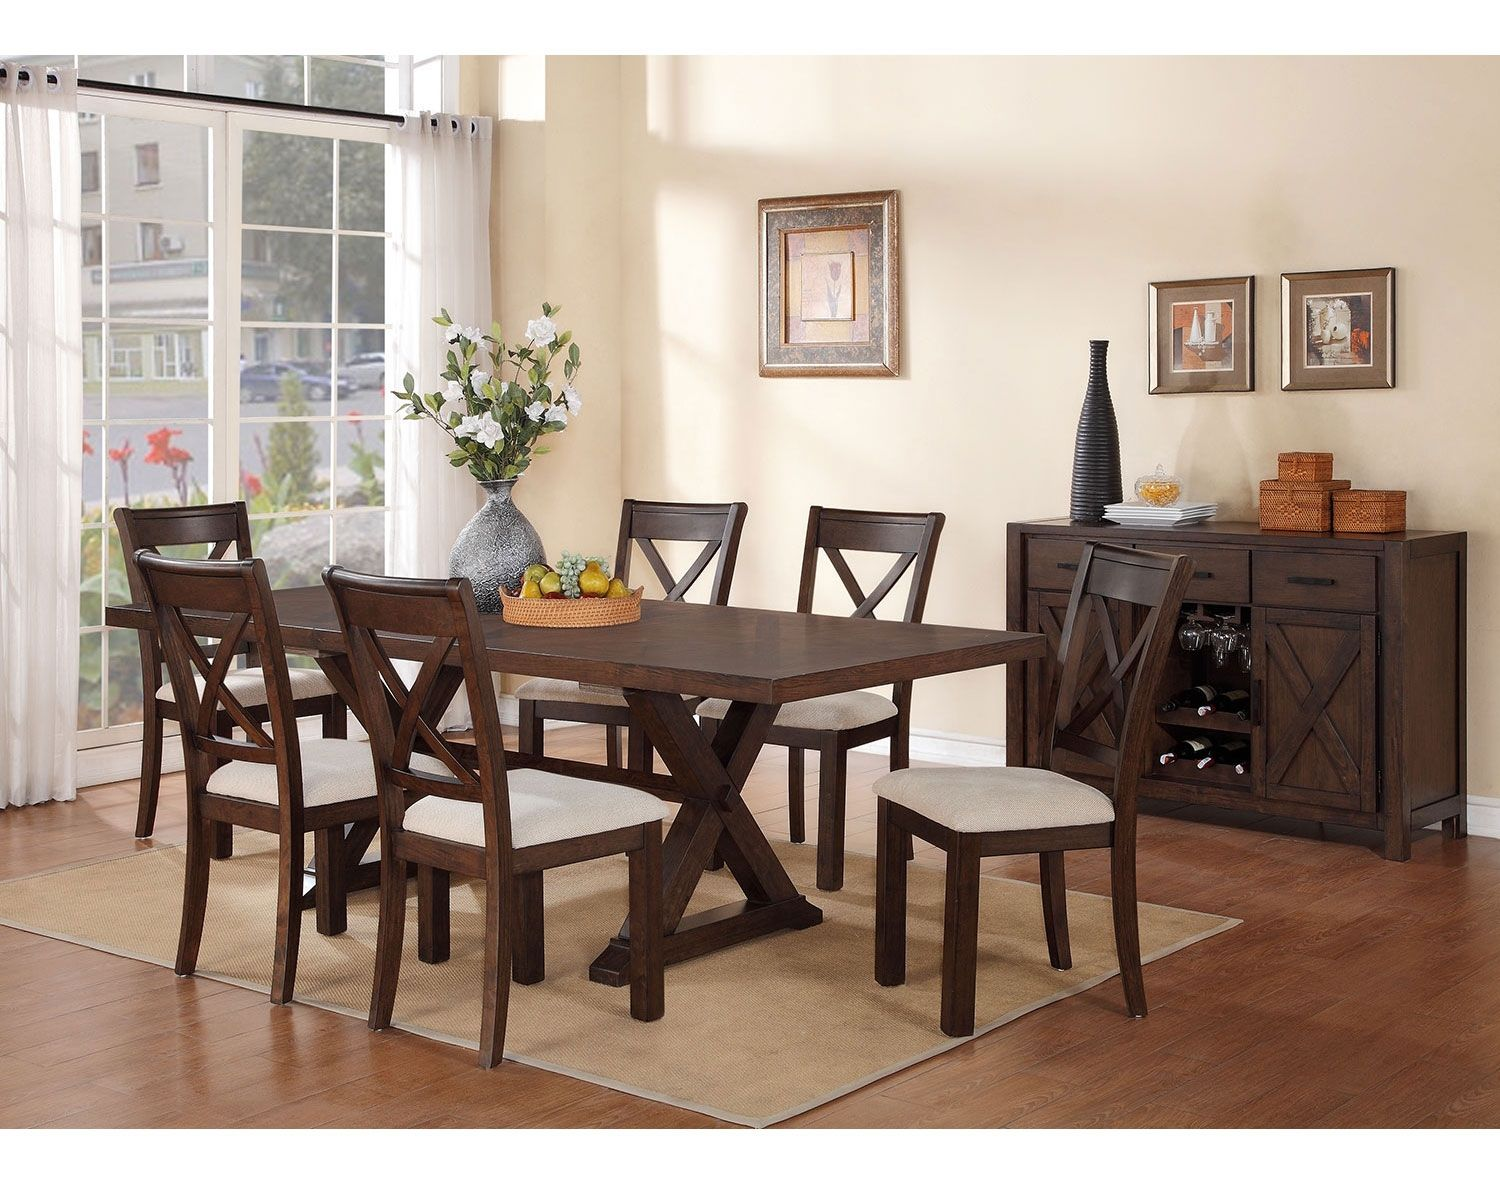 Strange Claira 7 Piece Dining Room Set Rustic Brown Home Sweet Dailytribune Chair Design For Home Dailytribuneorg